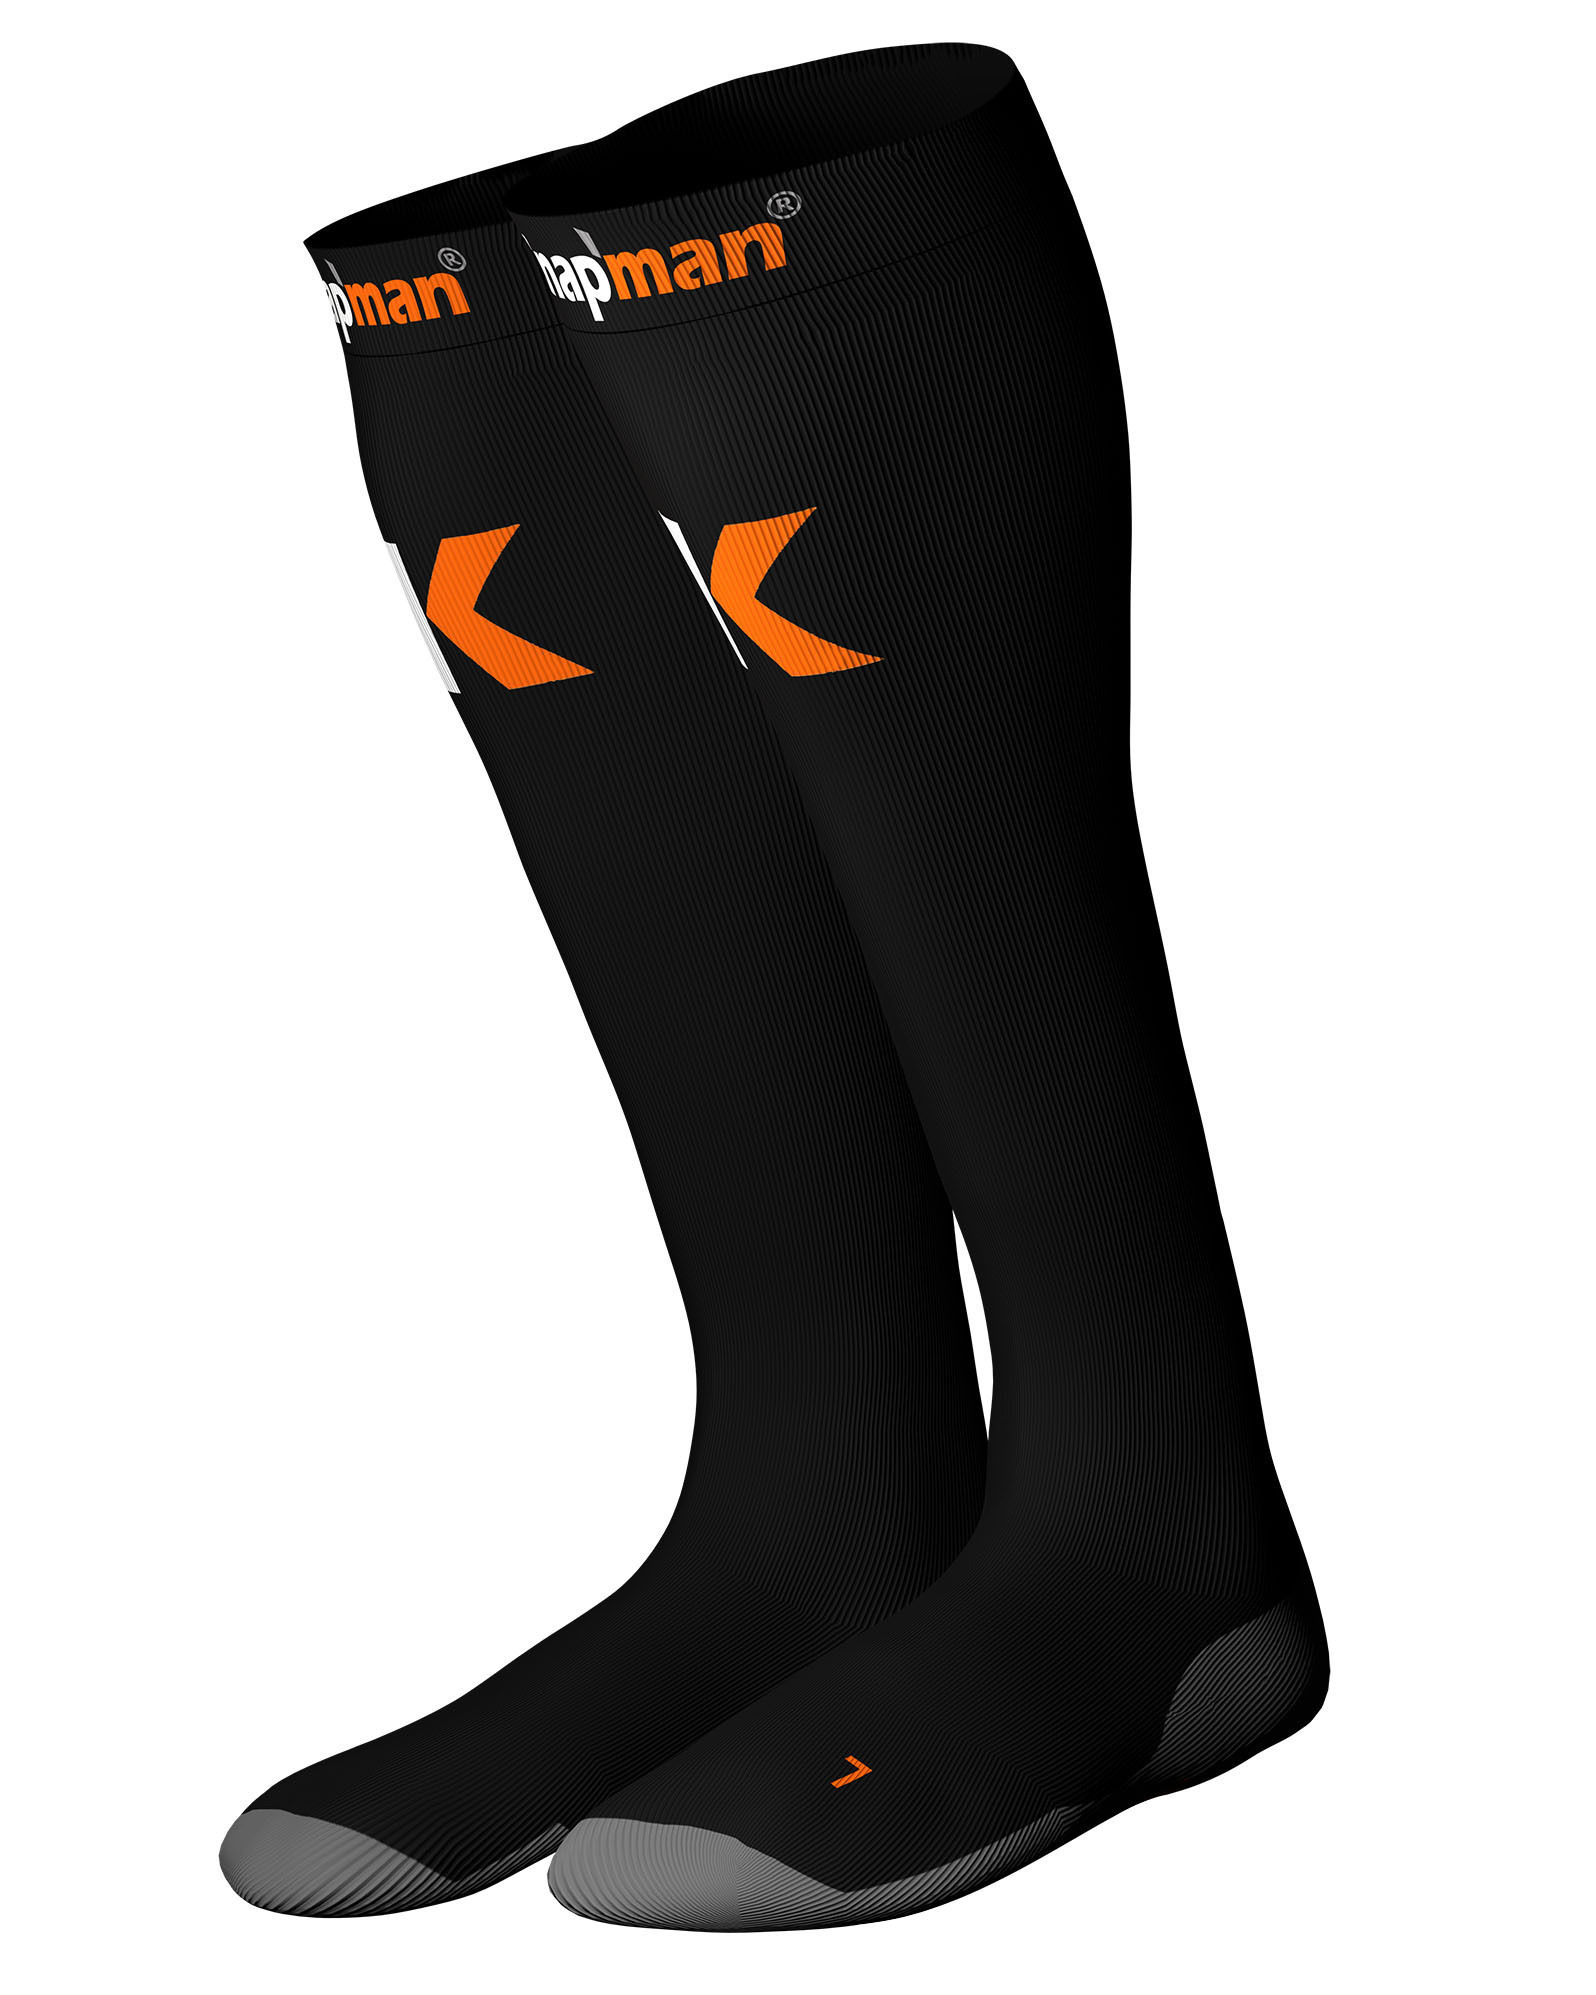 Knap'man Ultra Strong Compression Socks Black